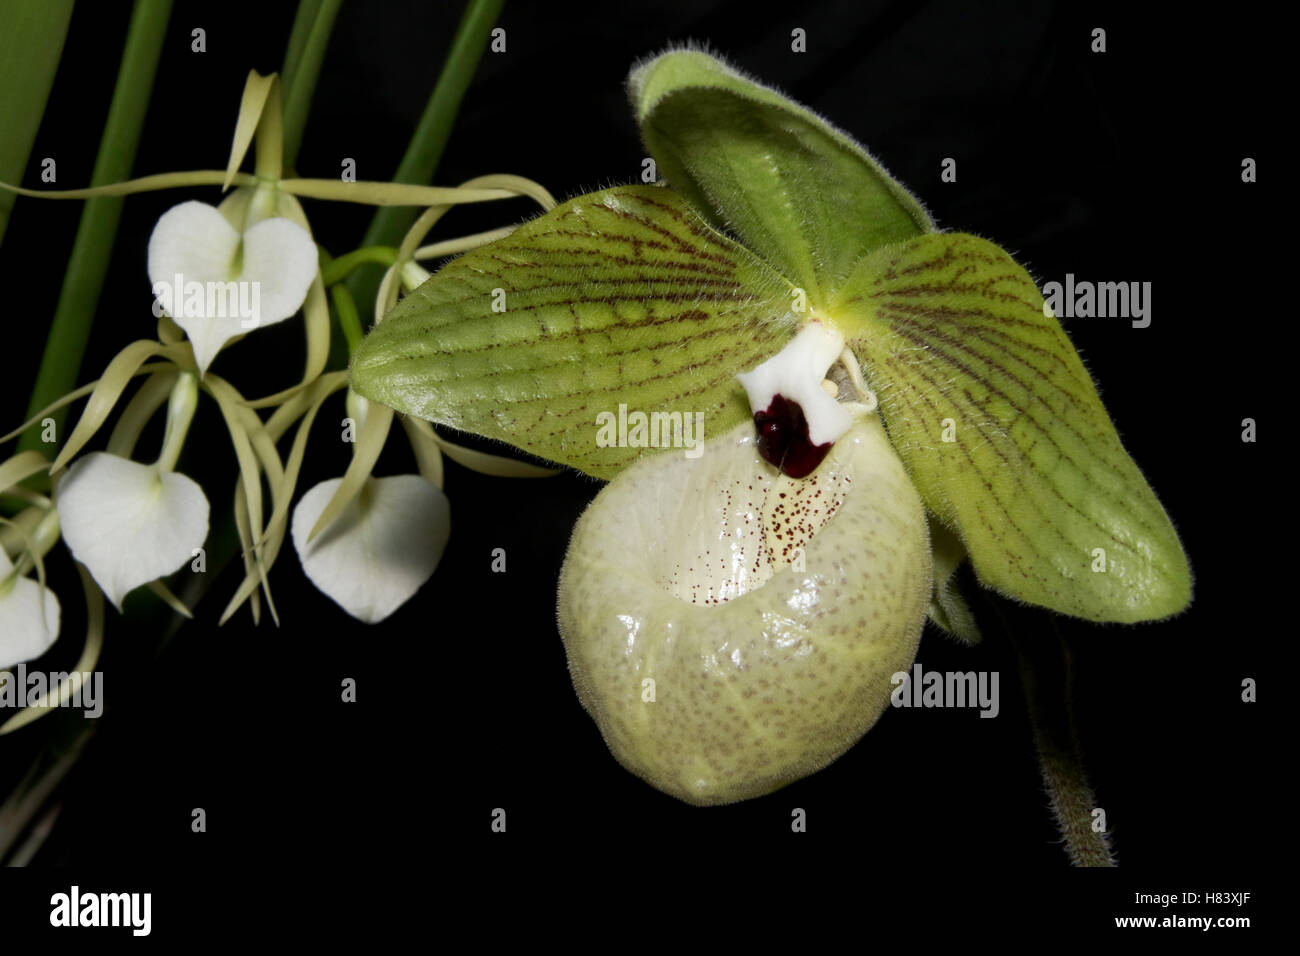 Lady Slipper Orchid. Lady's Slipper Orchid. Jade Slipper Orchid. Paphiopedilum malipoense. Orchid flower show. By - Stock Image